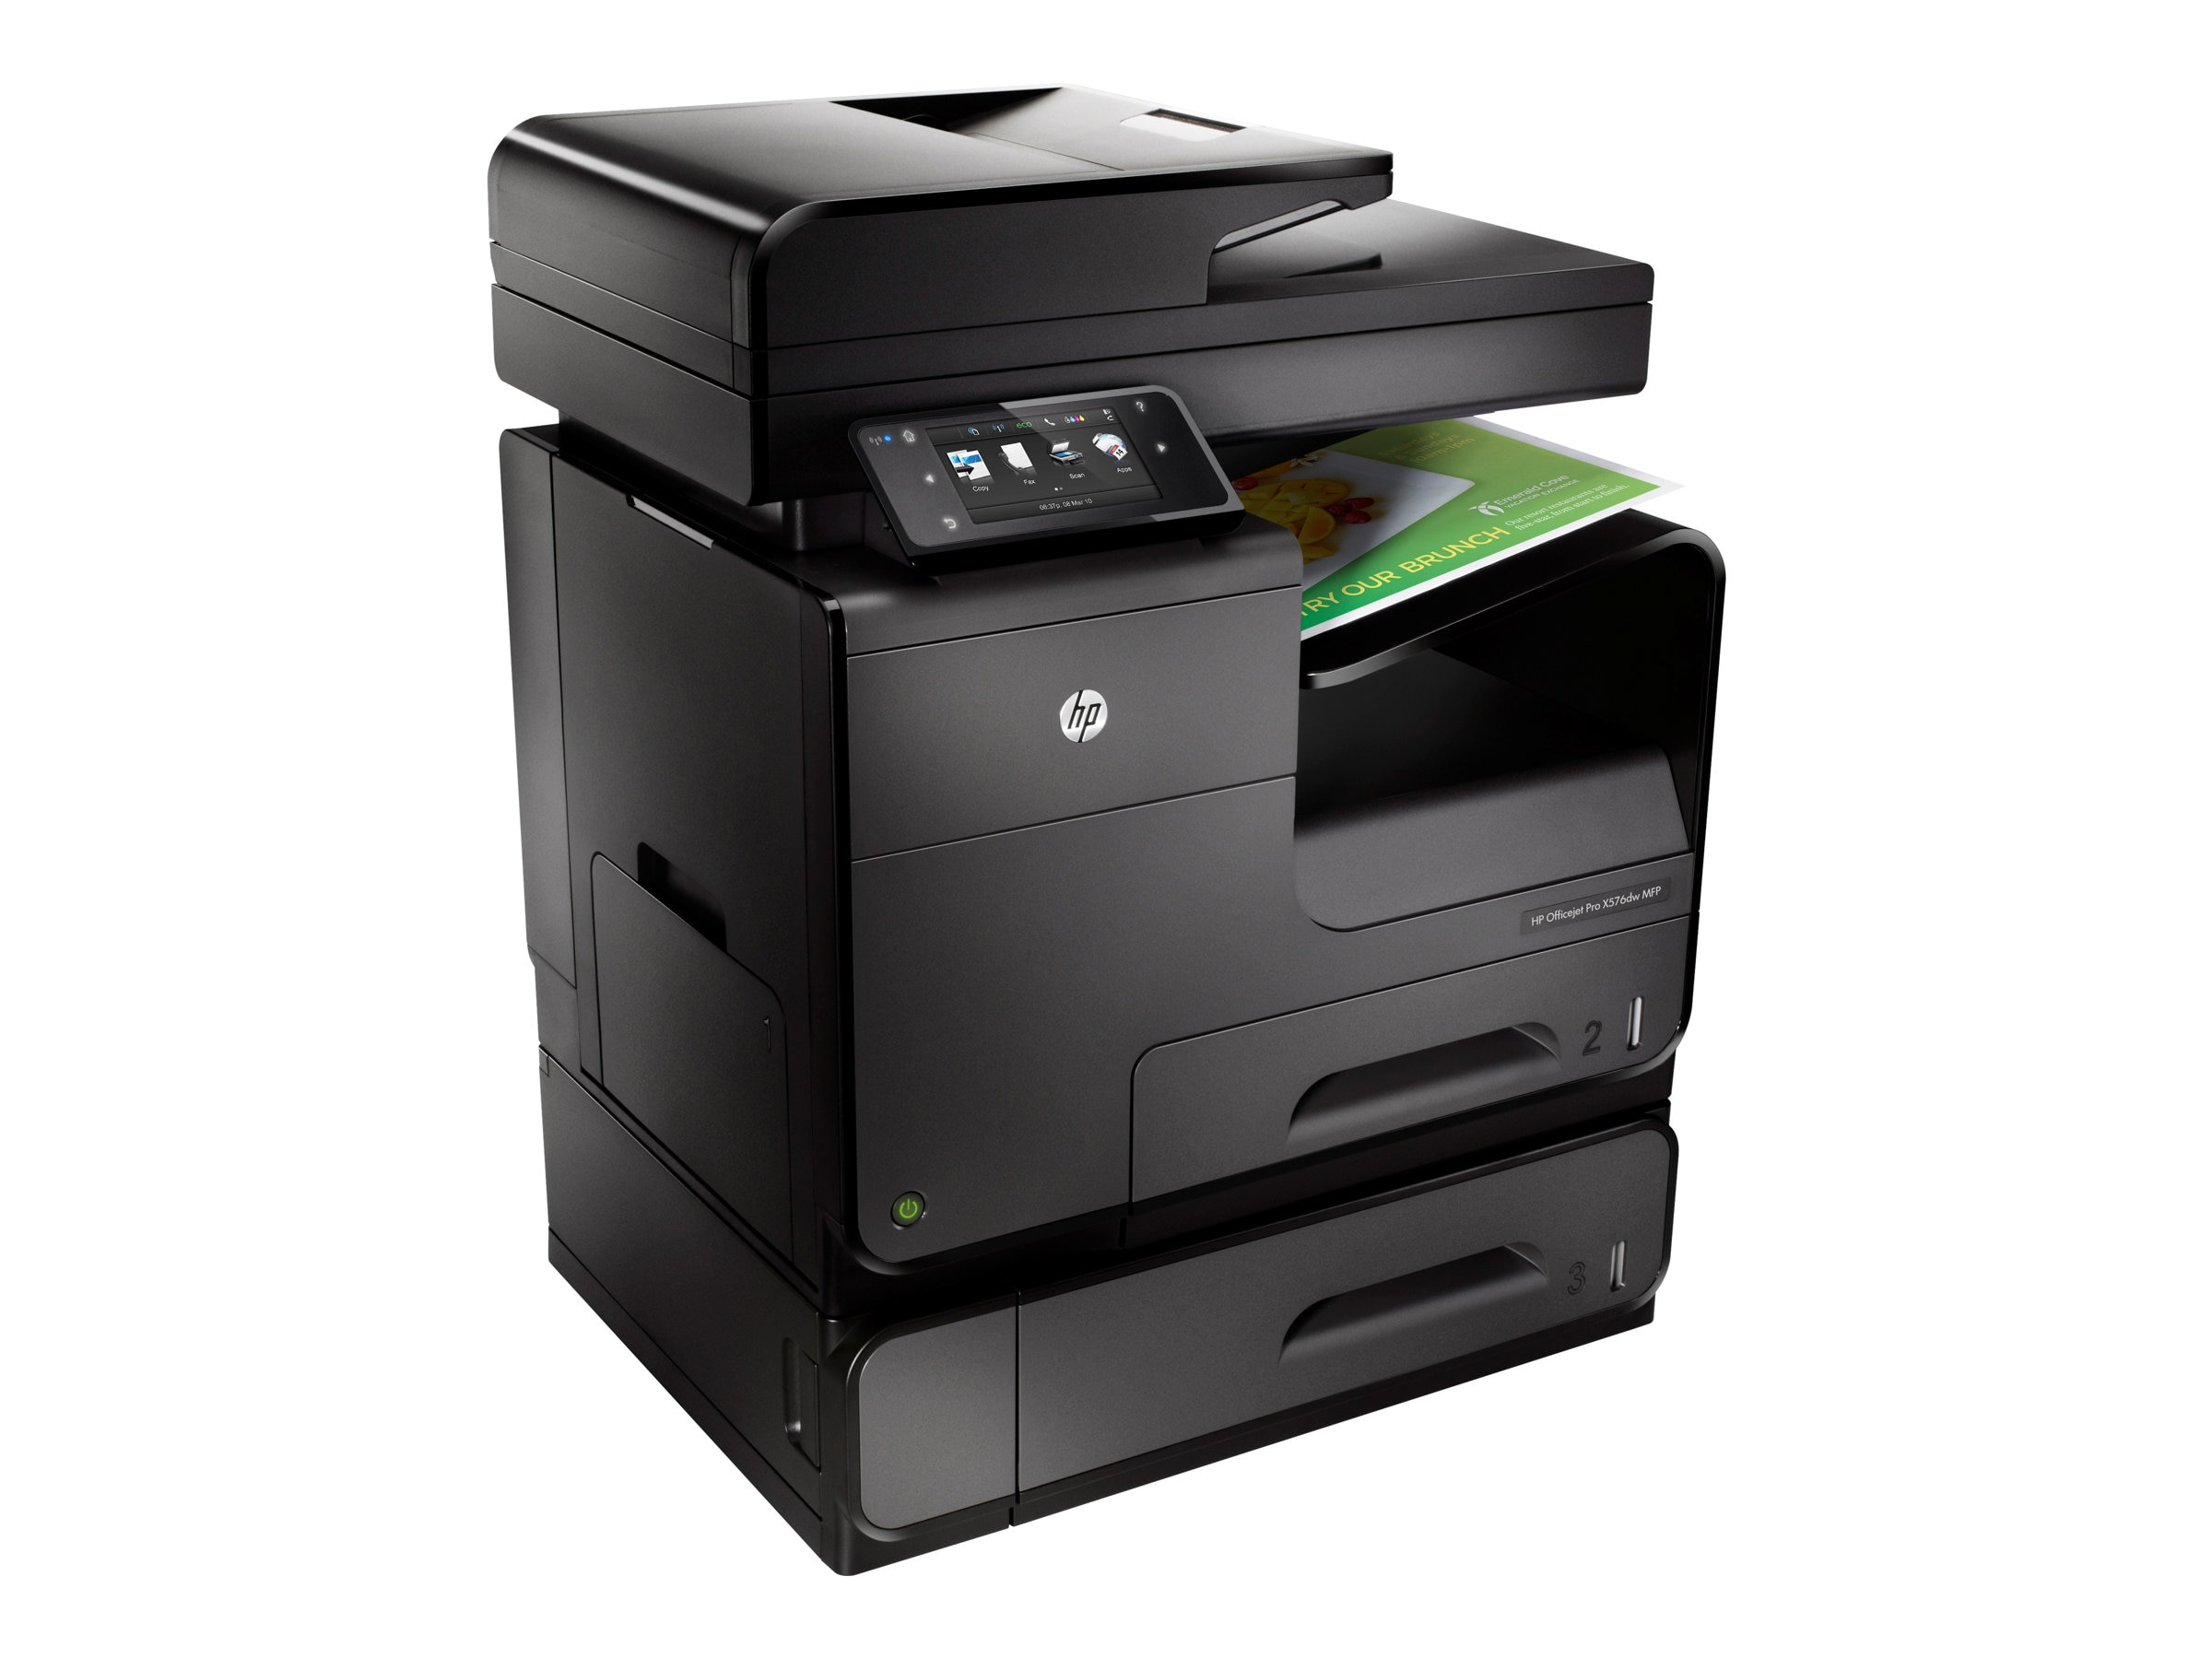 HP Officejet Pro X Series X576dw Color MFP $799 - $200 instant rebate = $599 Expires 12 31 2015, CN598A#B1H